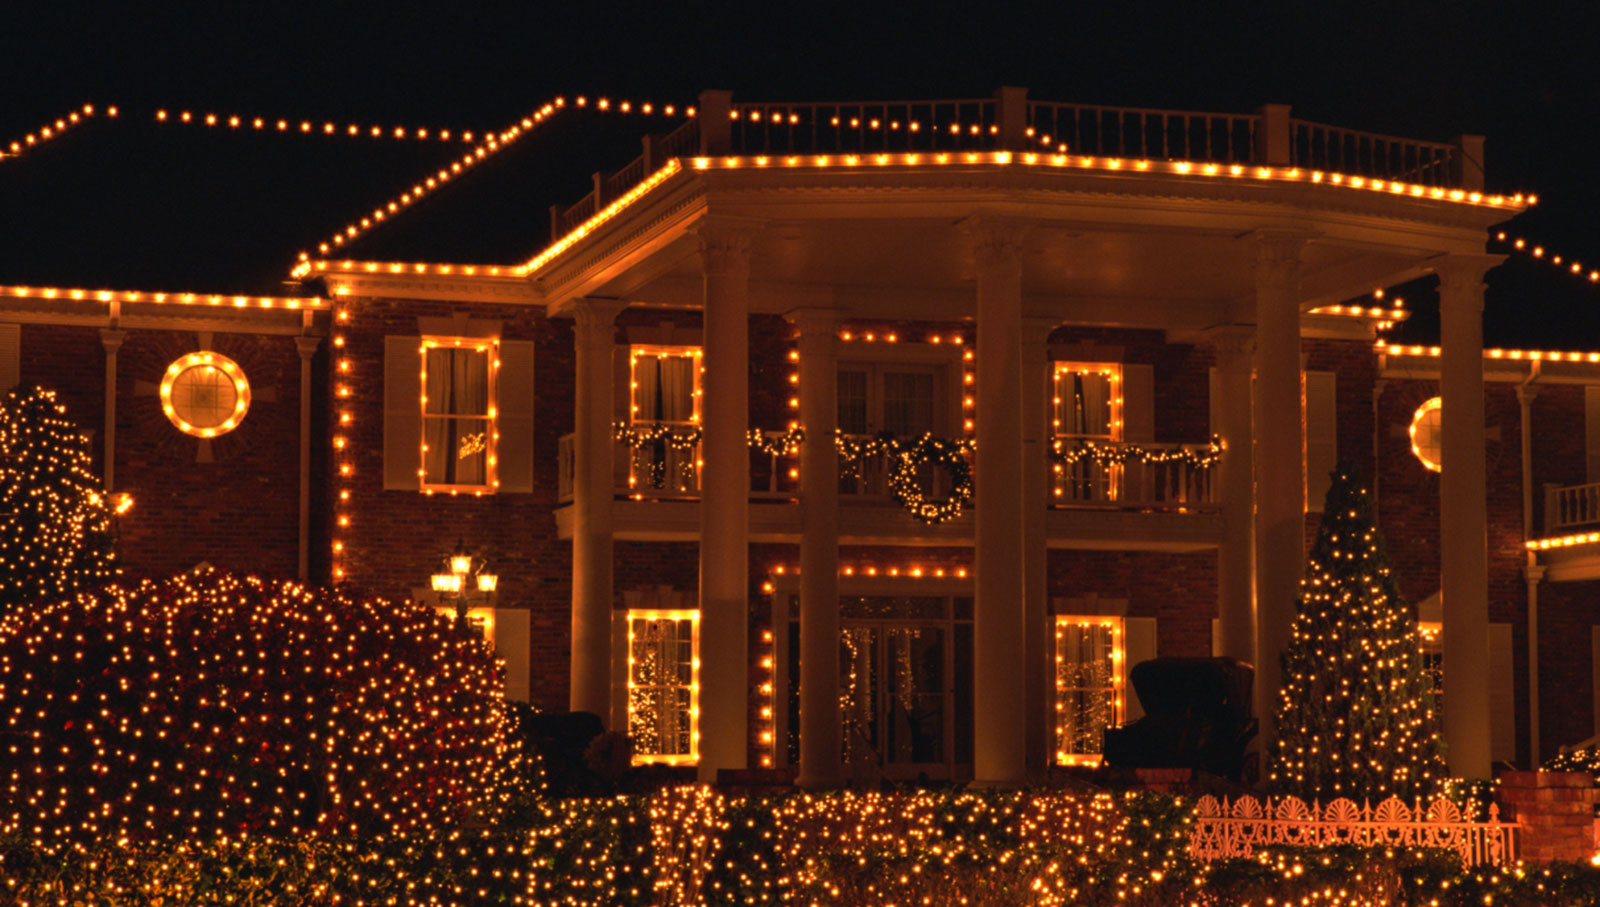 how to change a fuse in holiday lights